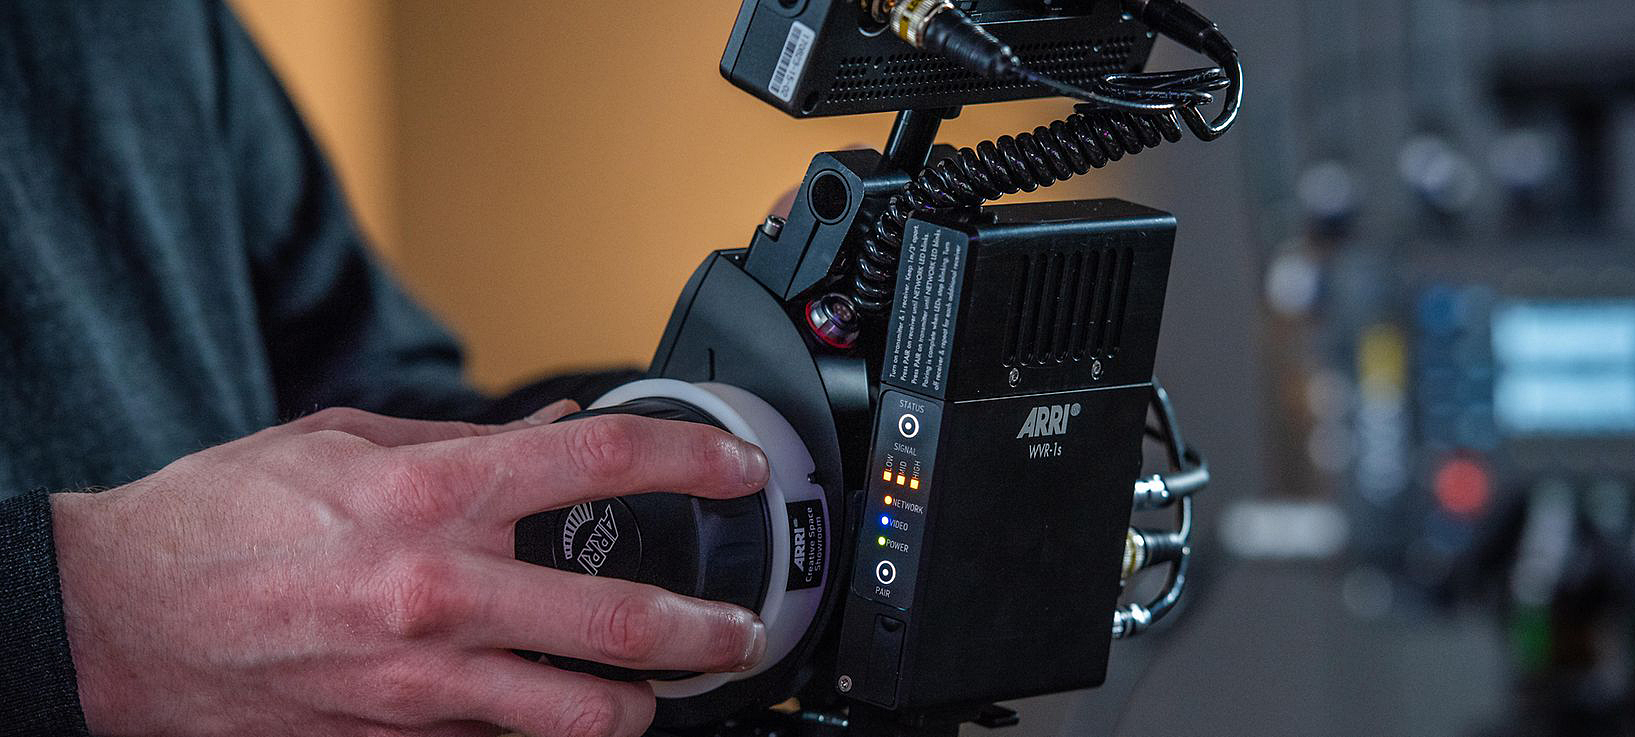 Arri Wvr 1S Featured